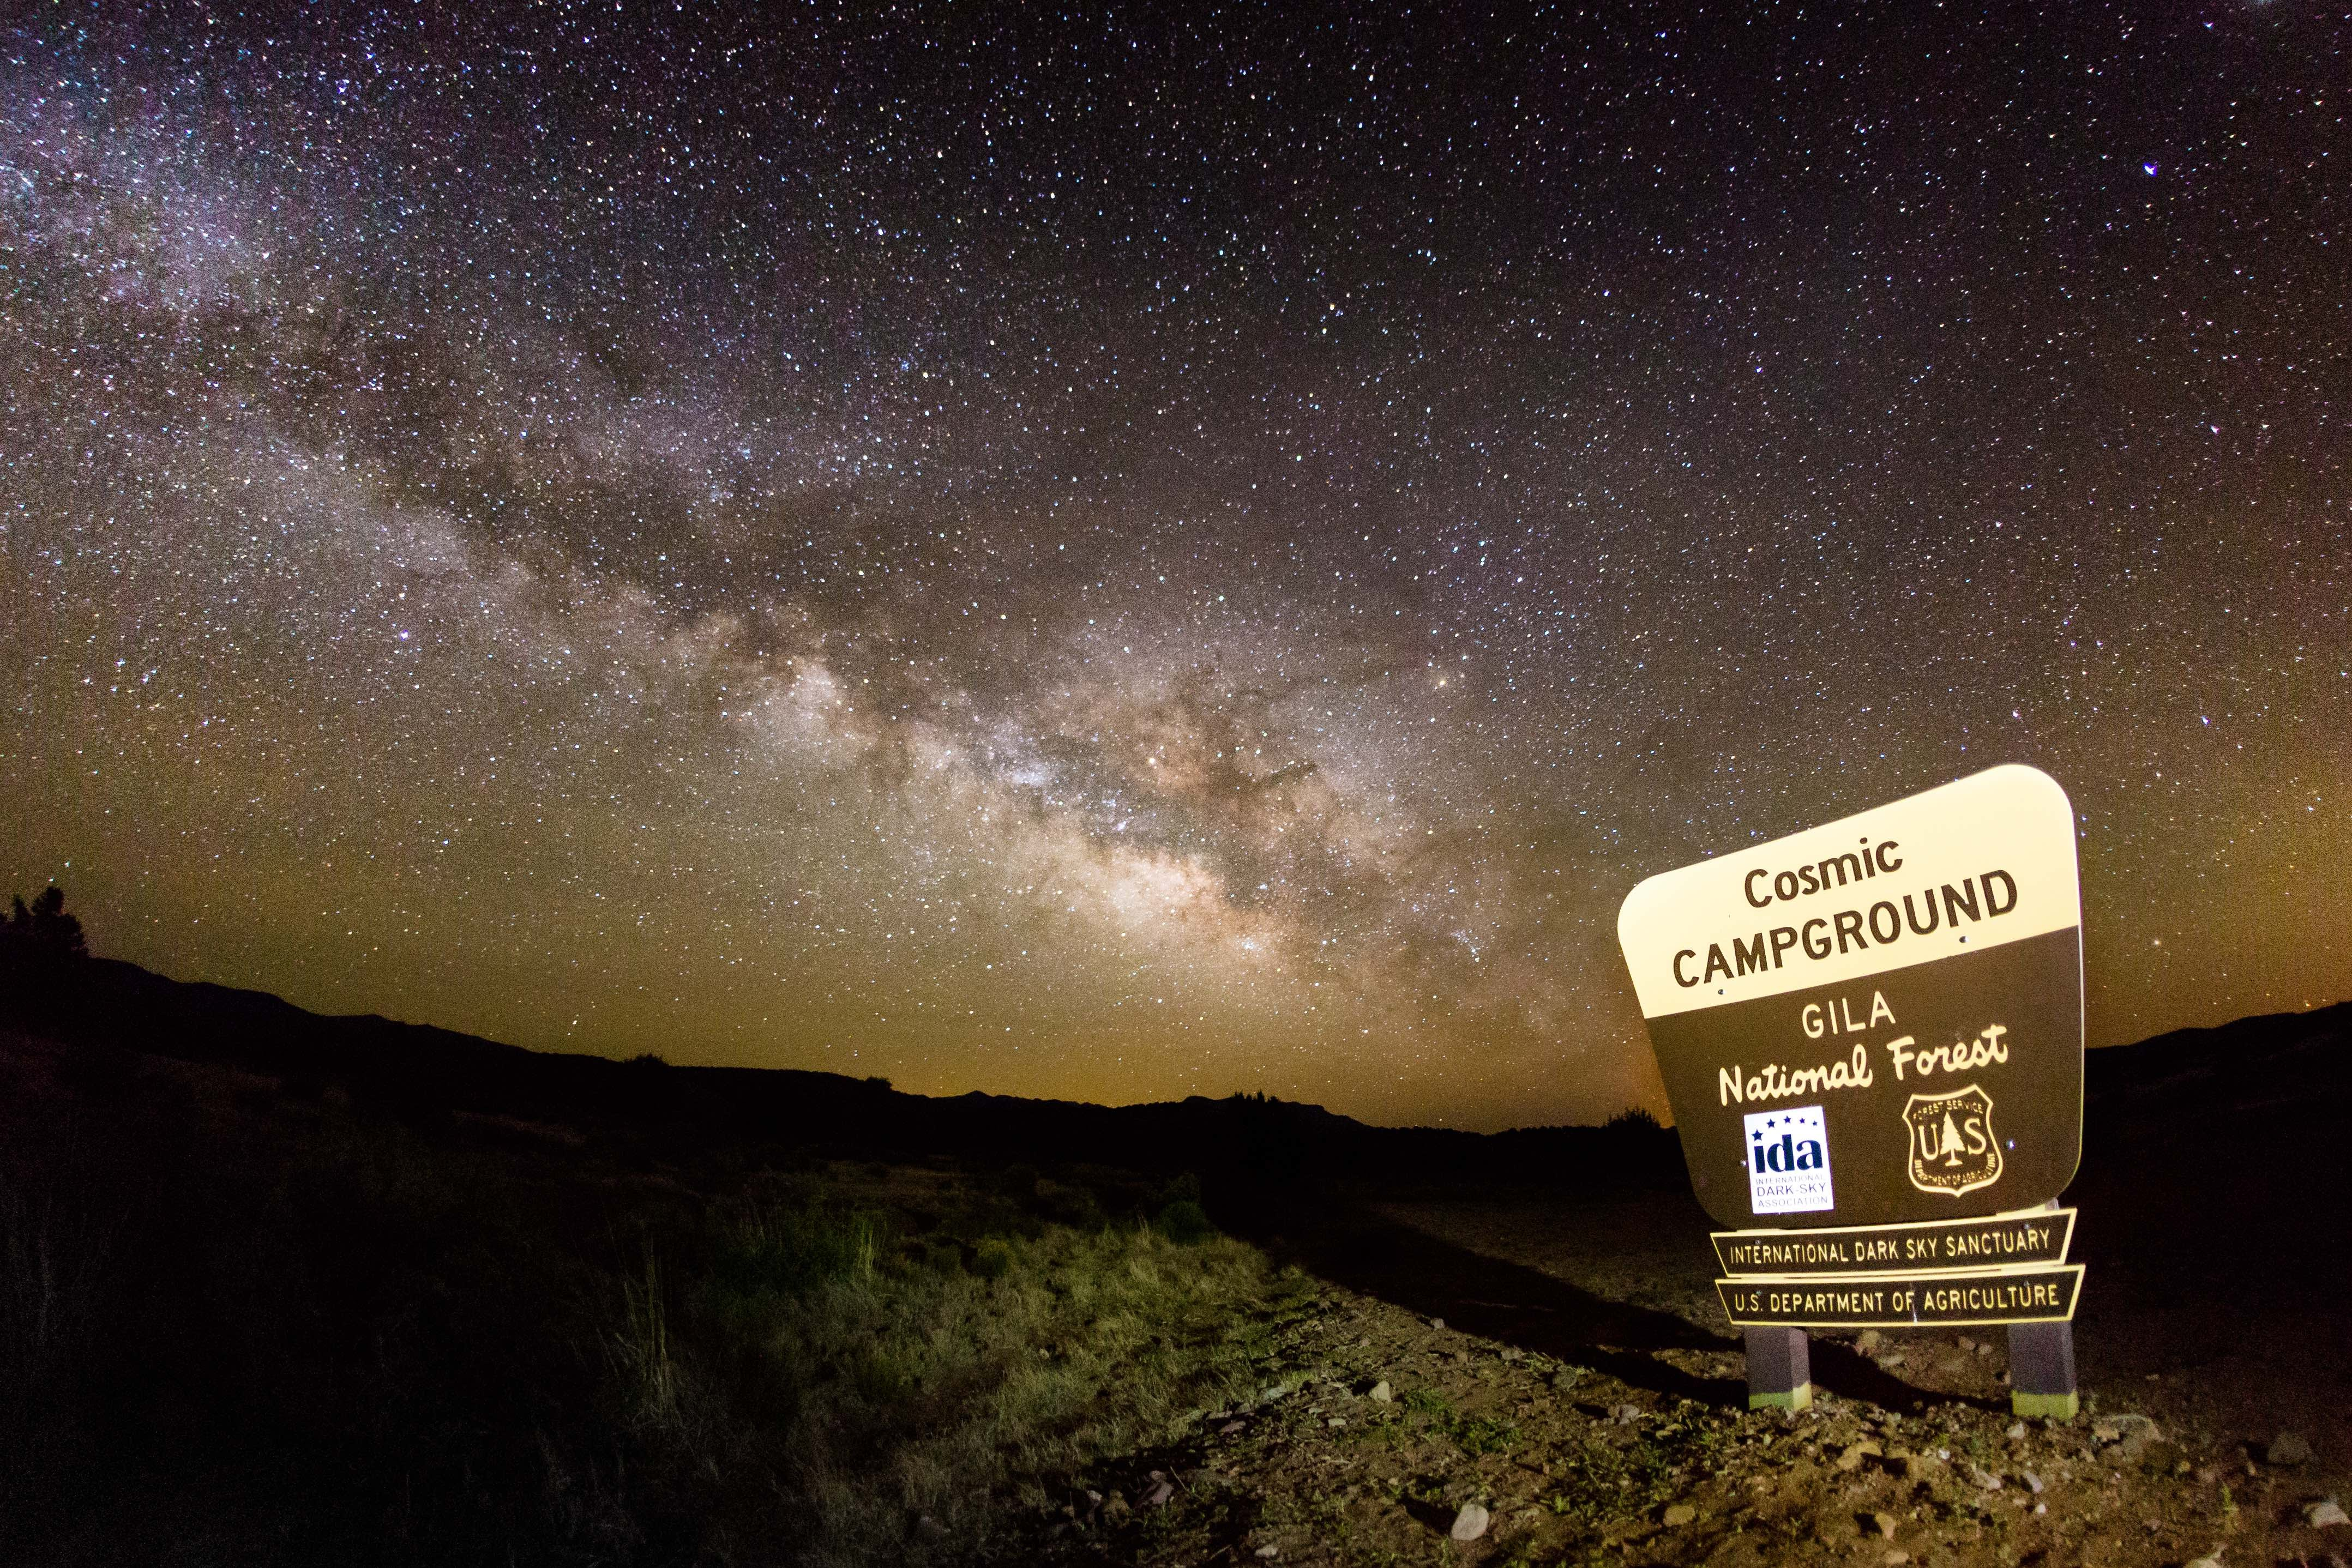 the cosmic campground international dark sky sanctuary located on the gila national forest was selected by the international dark sky ociation to be the